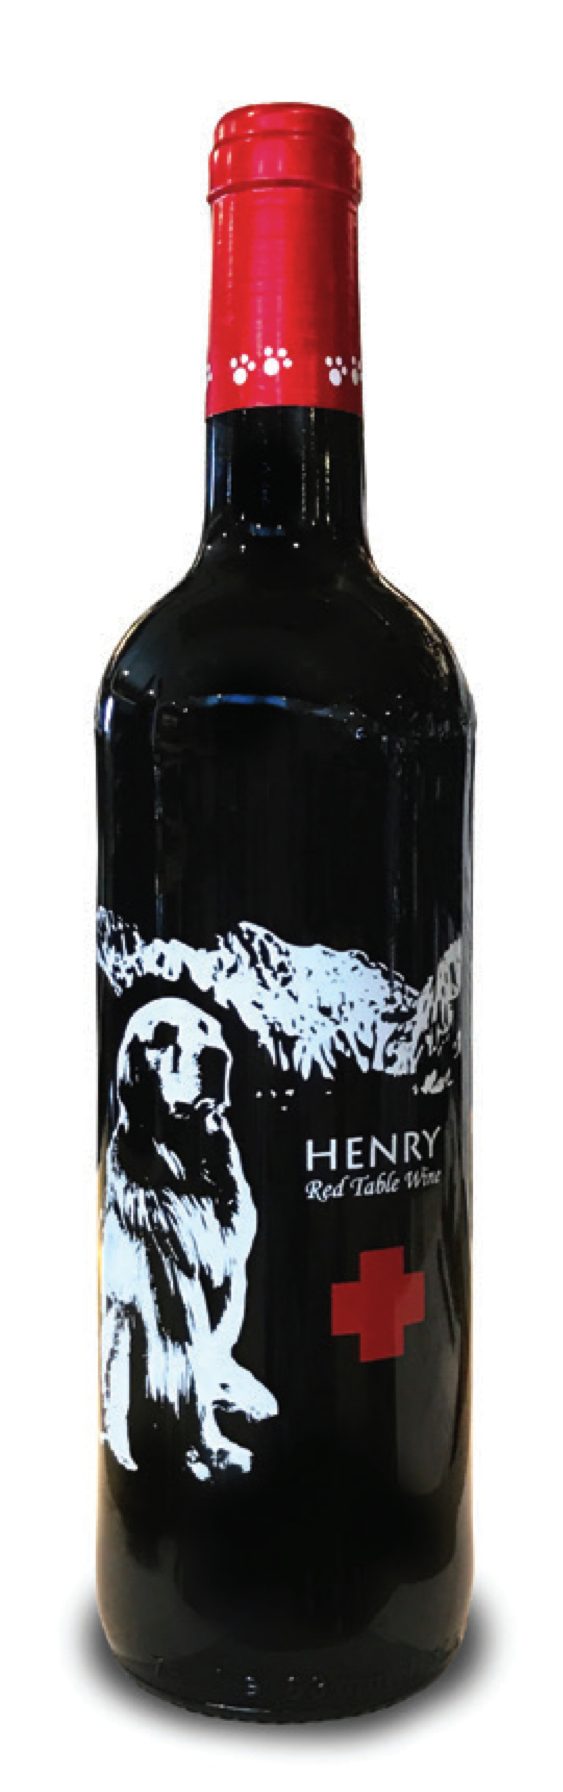 Henry Red Table Wine.png